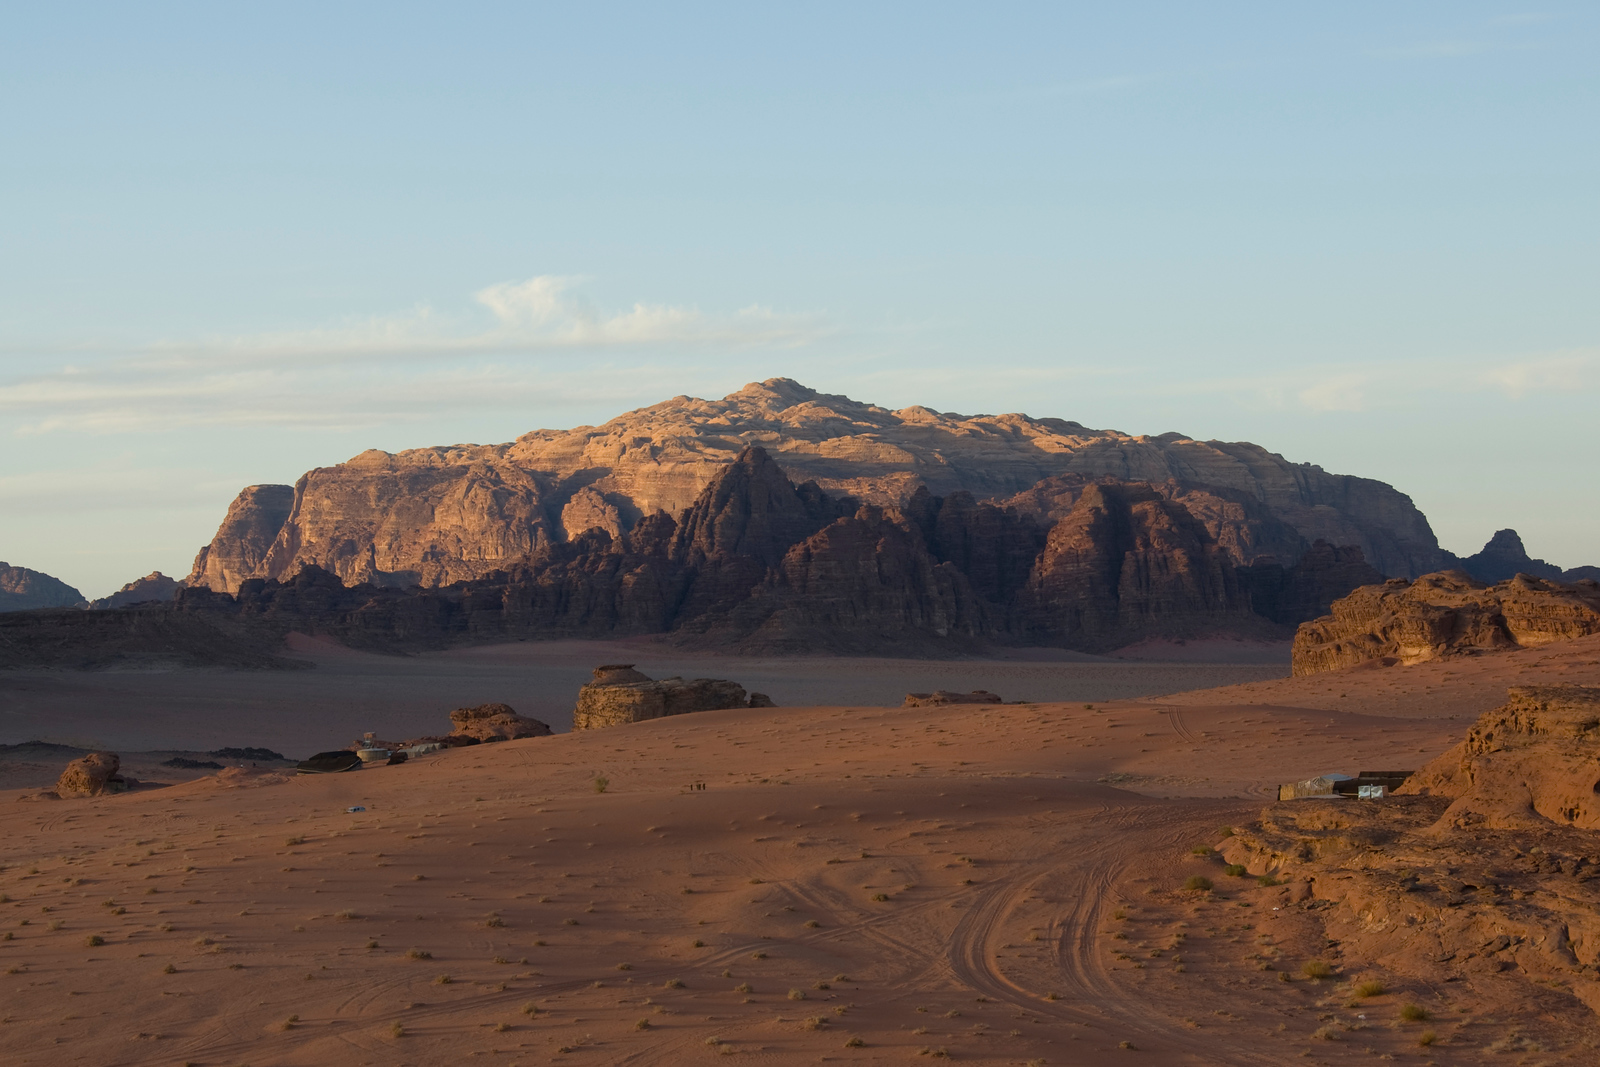 Wadi Rum Protected Area UNESCO World Heritage Site, Jordan